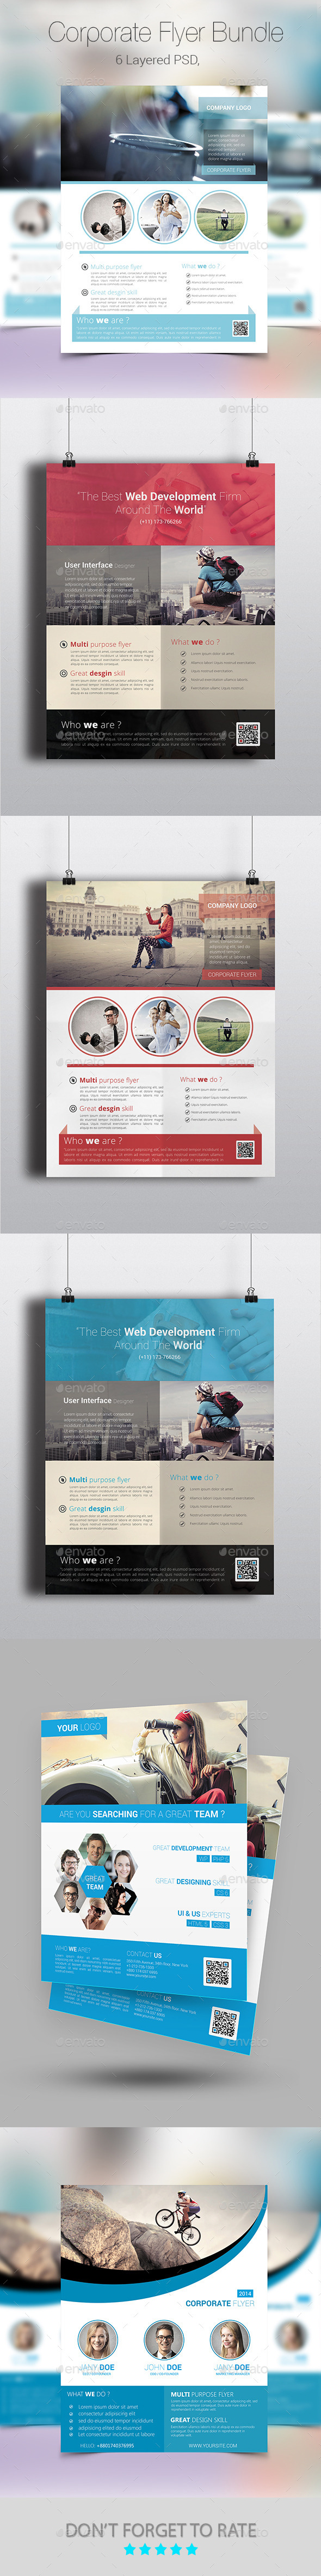 GraphicRiver Corporate Flyer Poster Bundle 8791635